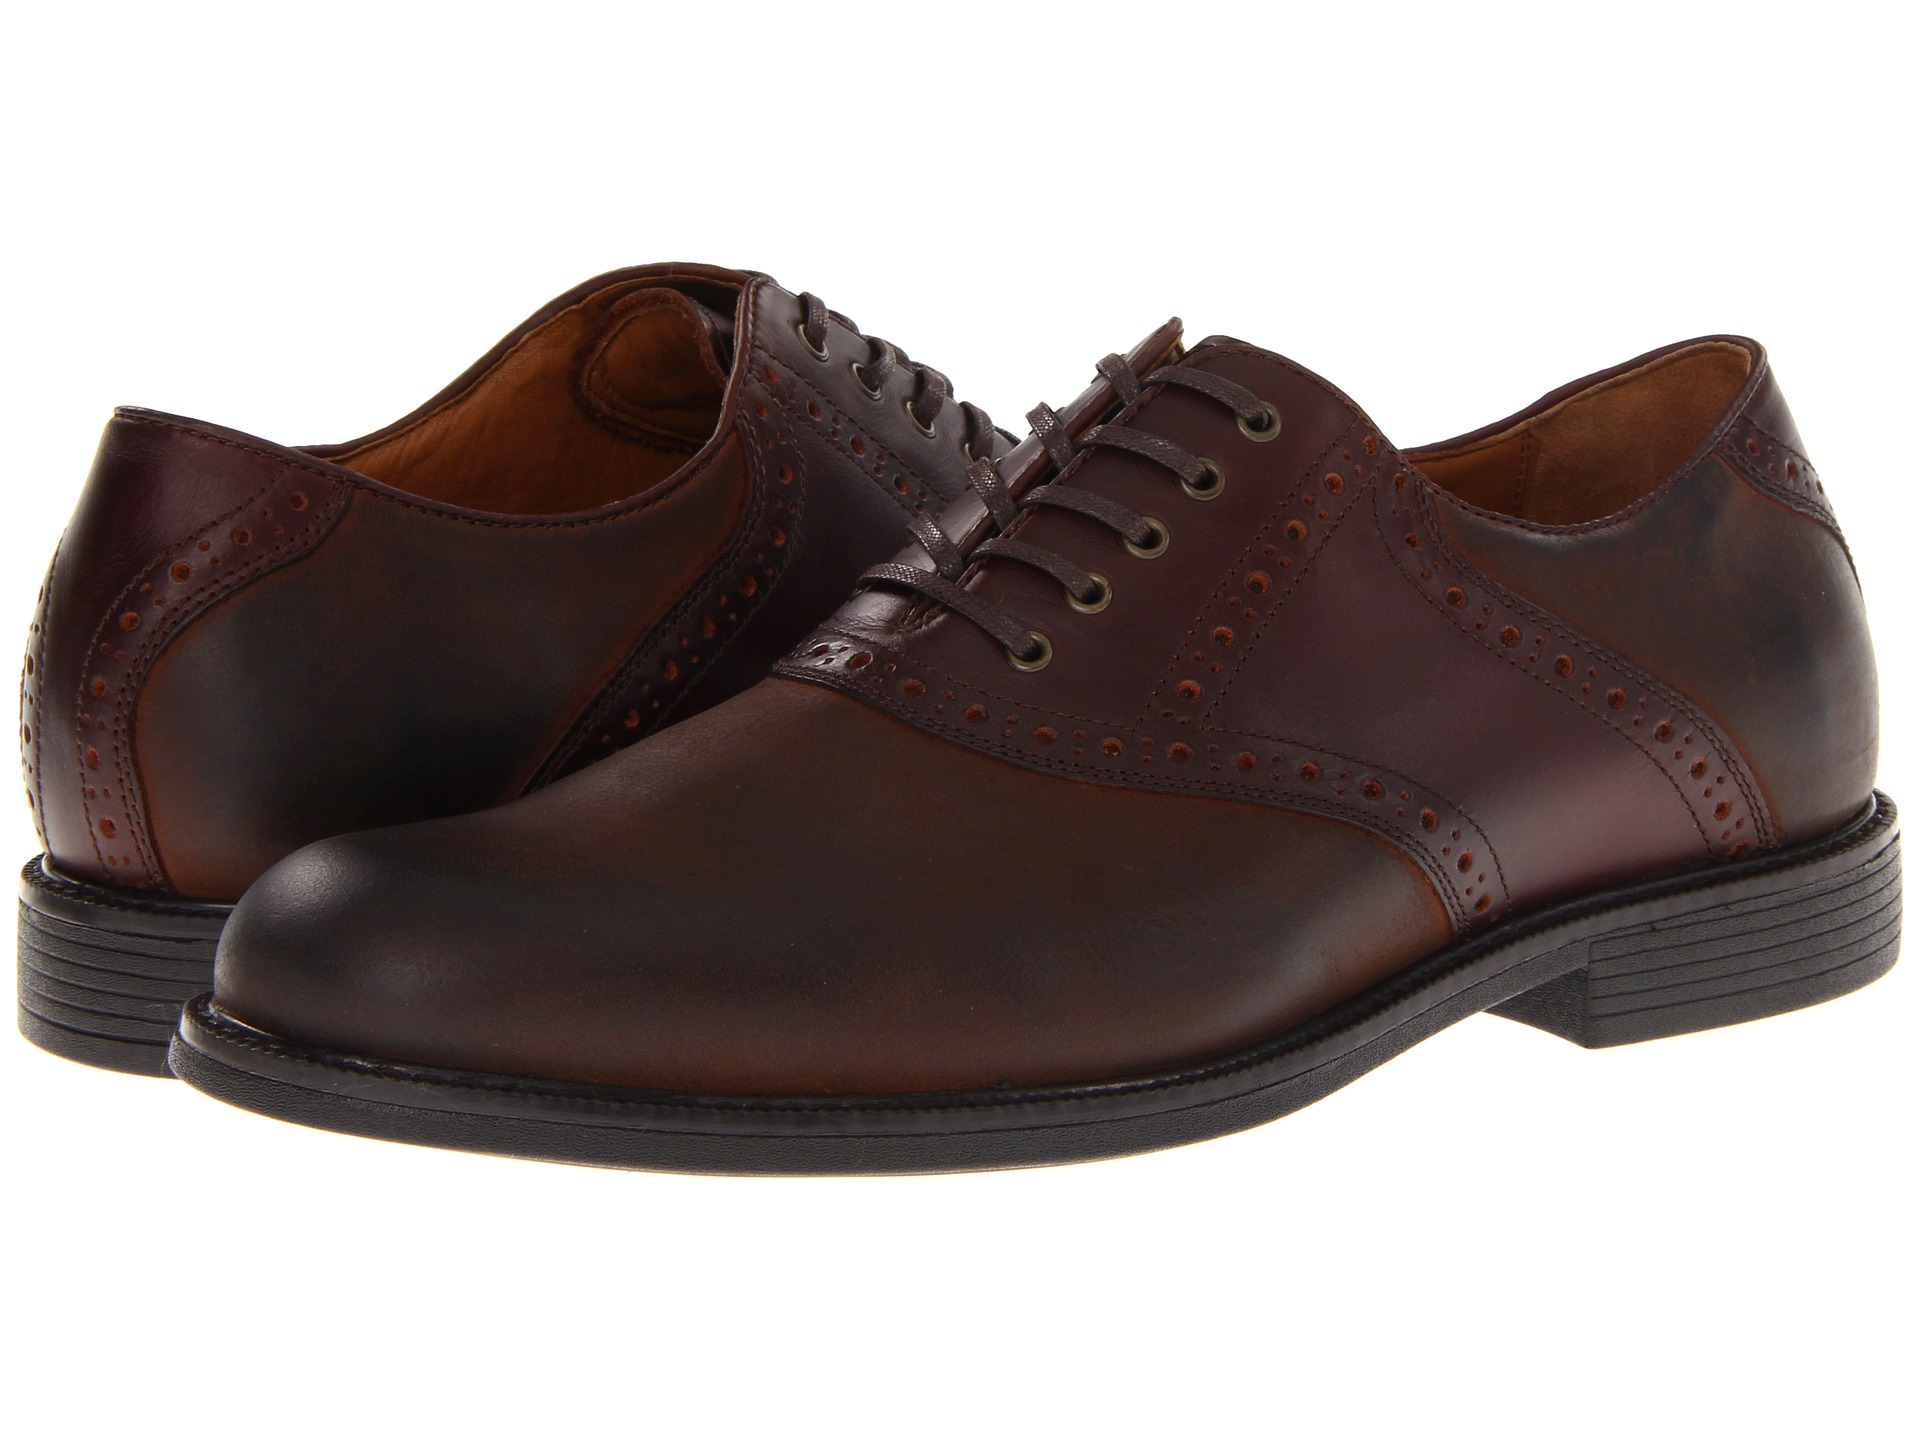 Shop Johnston & Murphy for a premium selection of men's and women's shoes, accessories, apparel and gifts. Free ground shipping on orders over $ Johnston & Murphy.